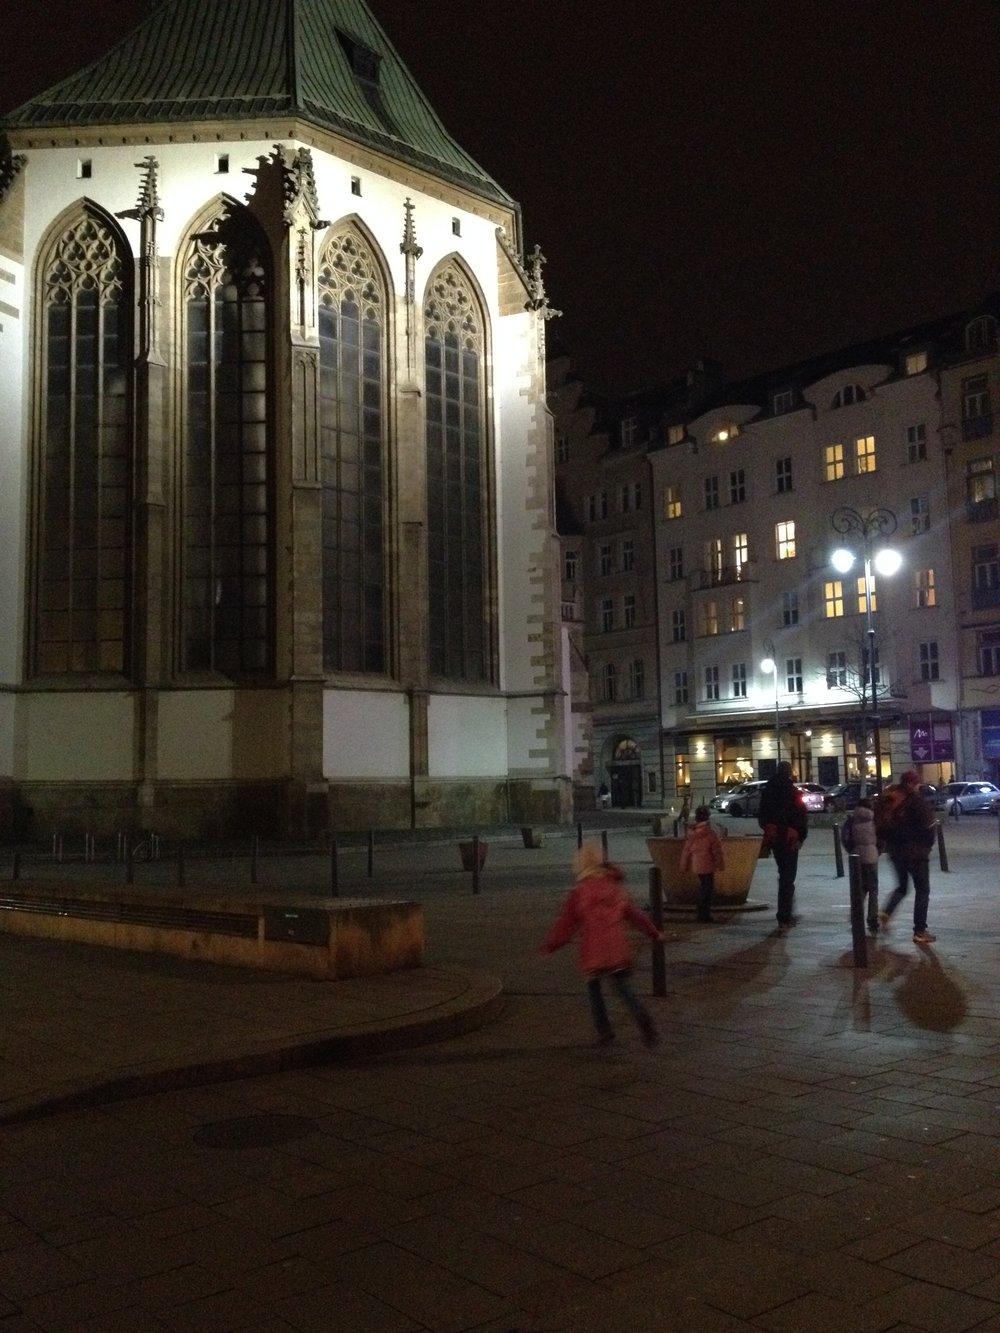 On our journey back to the car we pass by St. James Church, which we think is perhaps Brno's most beautiful building.